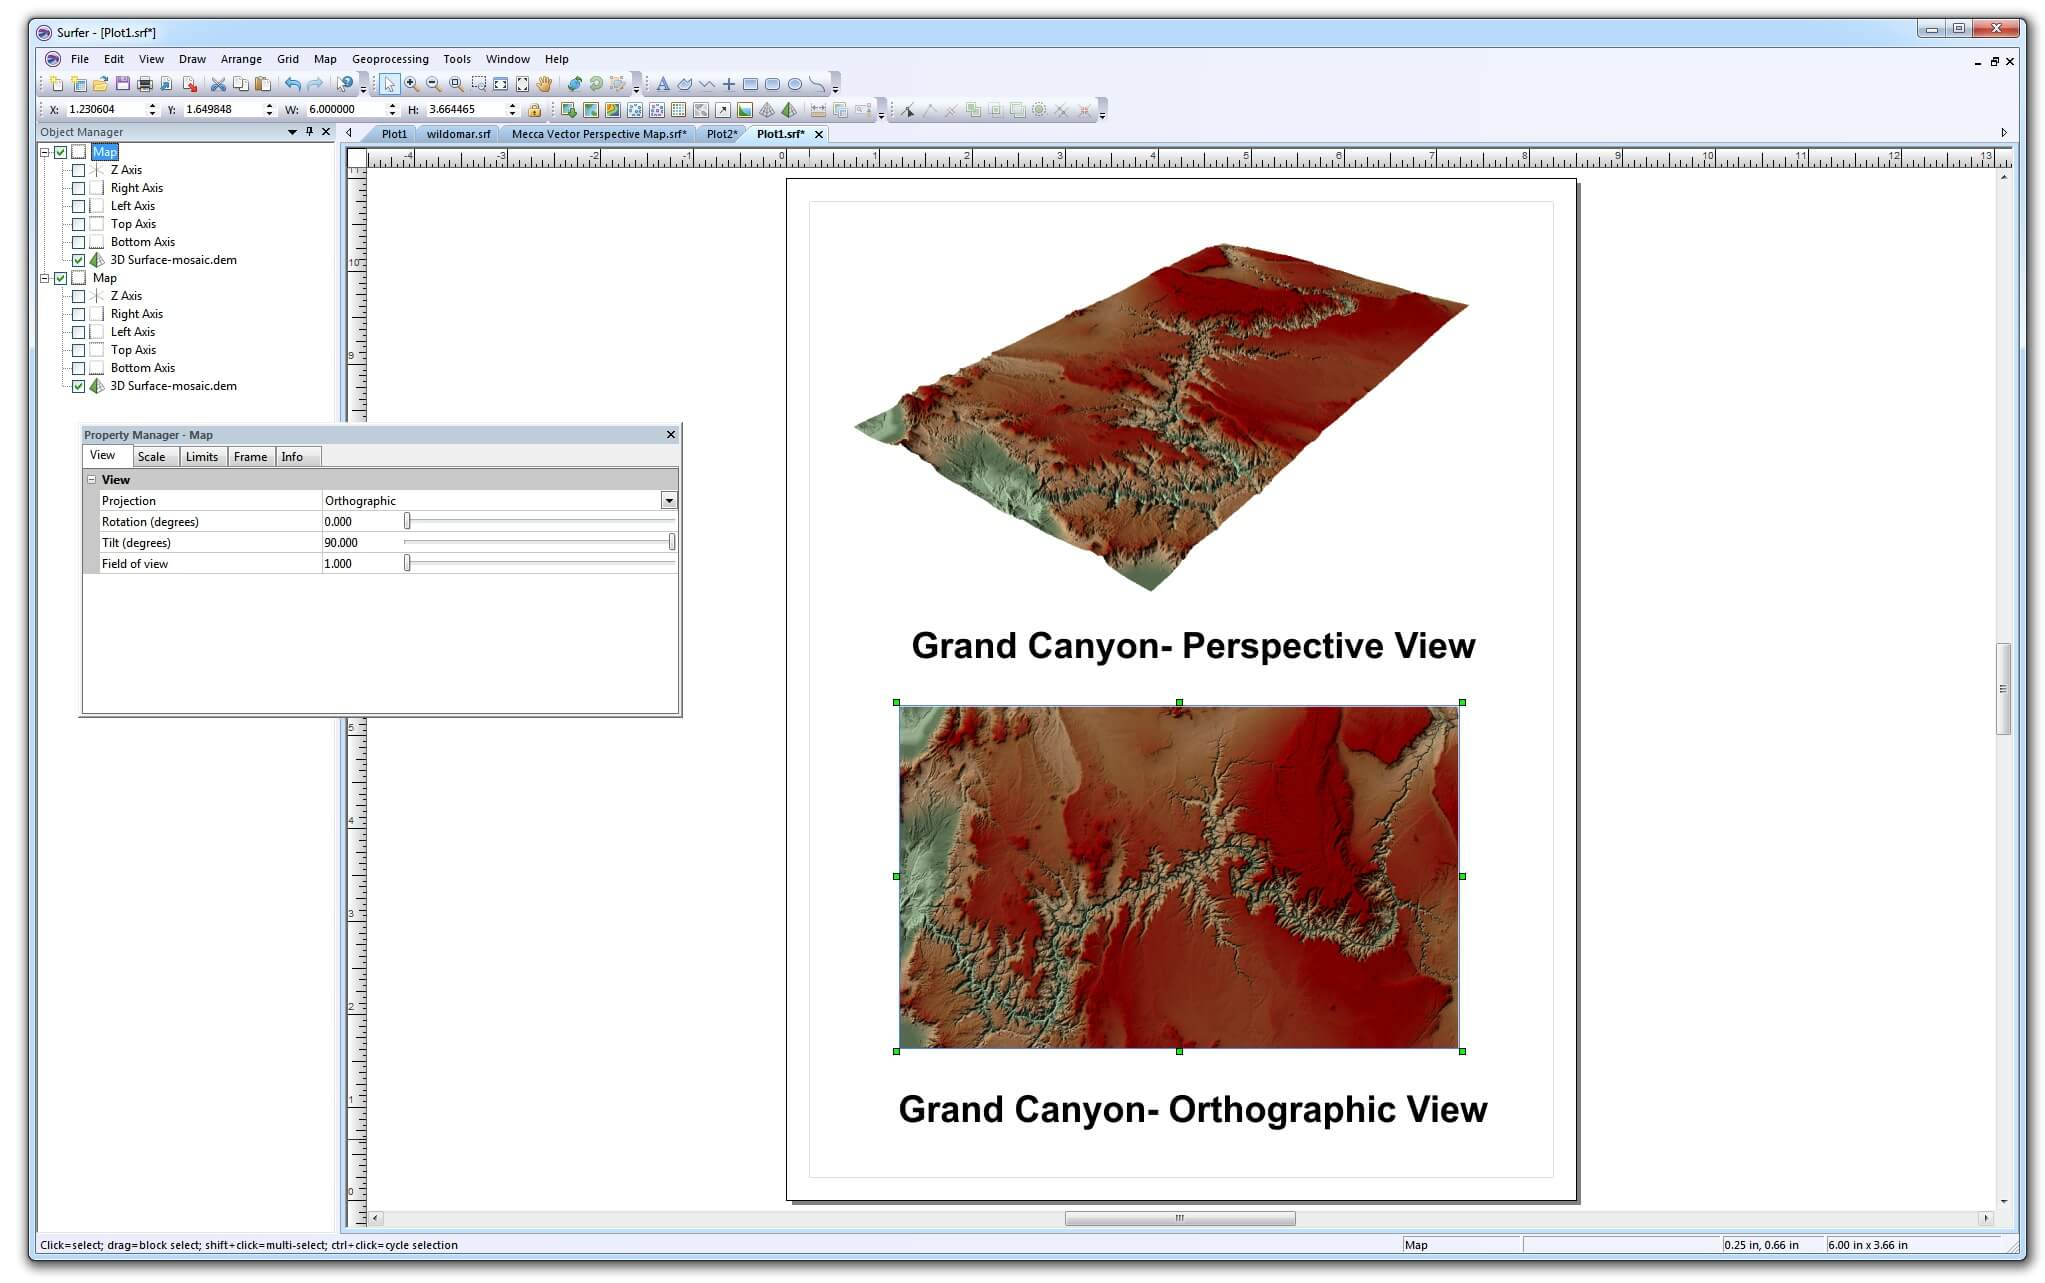 Surfer mapping software - Grand Canyon perspecitve view and orthographic view